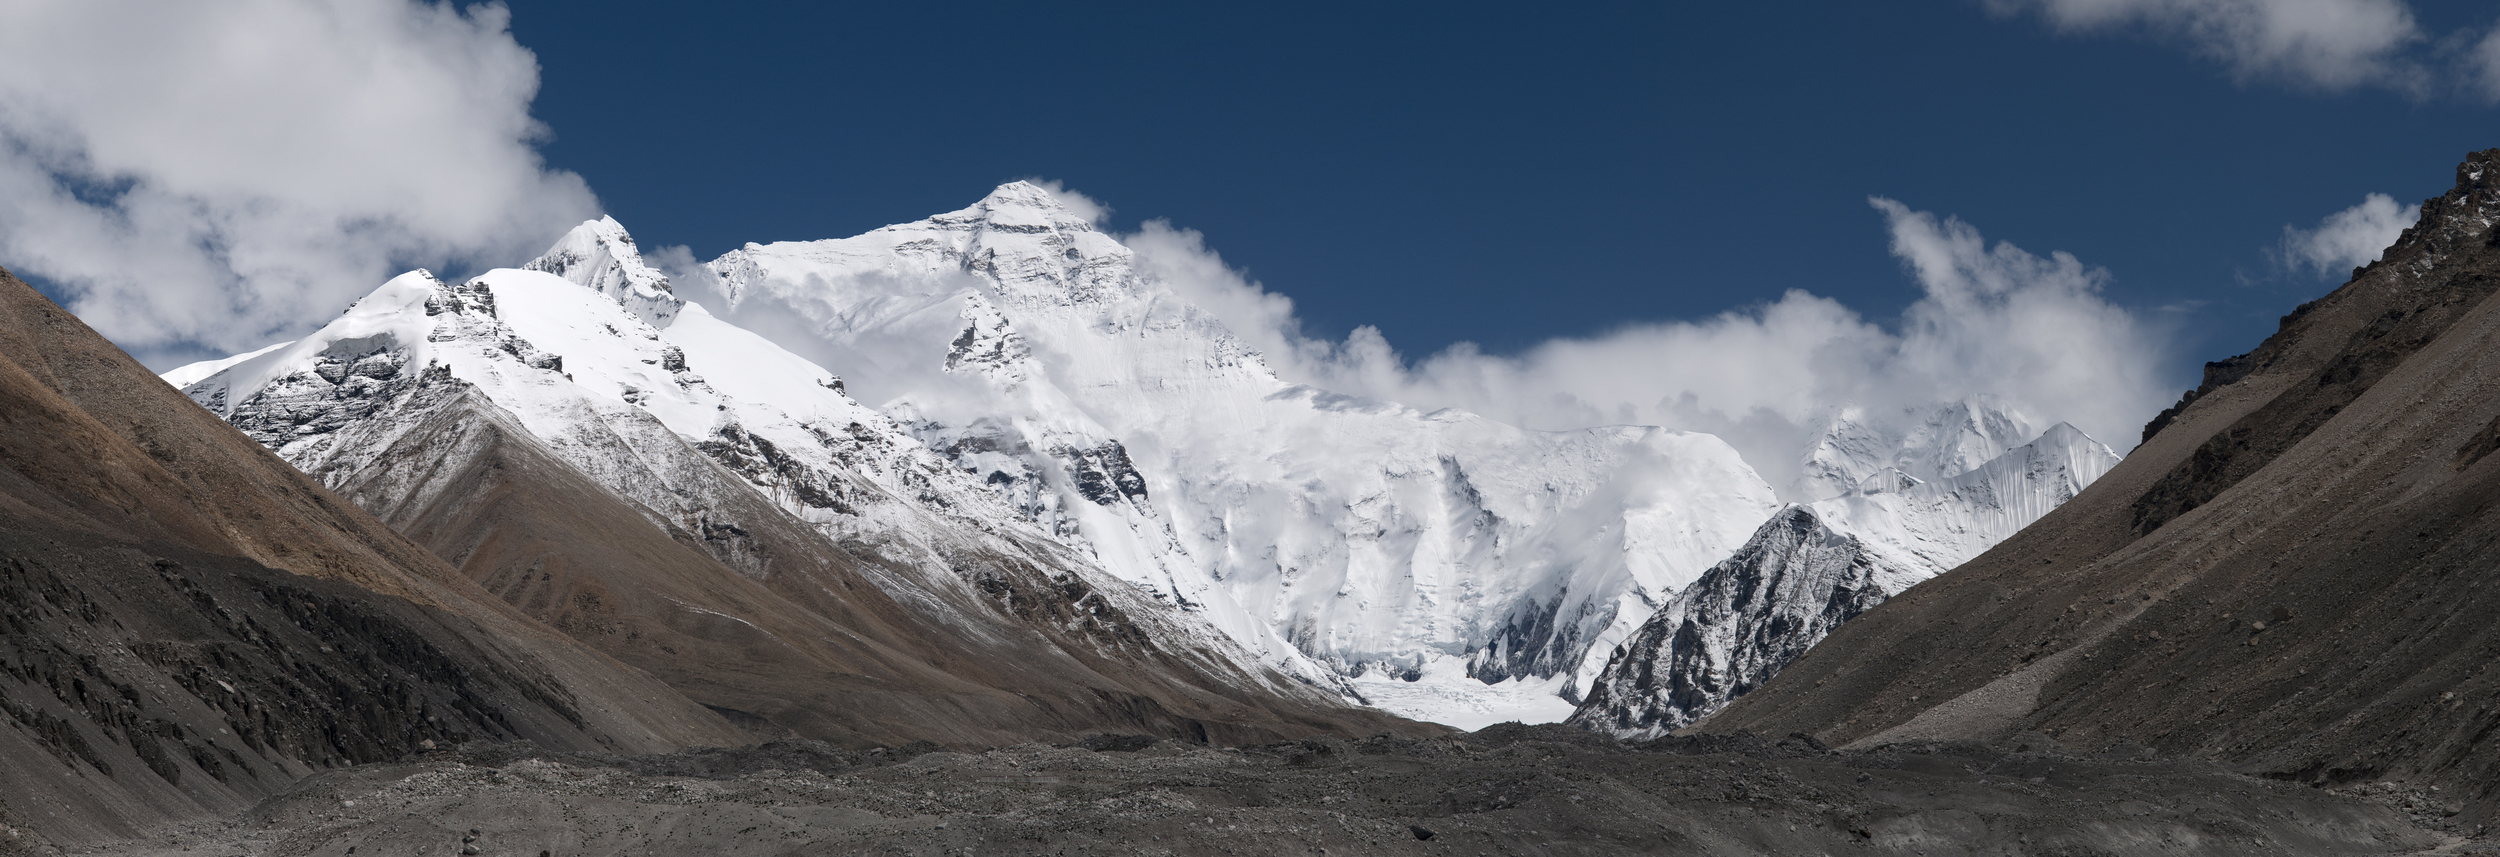 20110810 North Face of Everest Tibet China Panoramic.jpg e2df0ee0fac